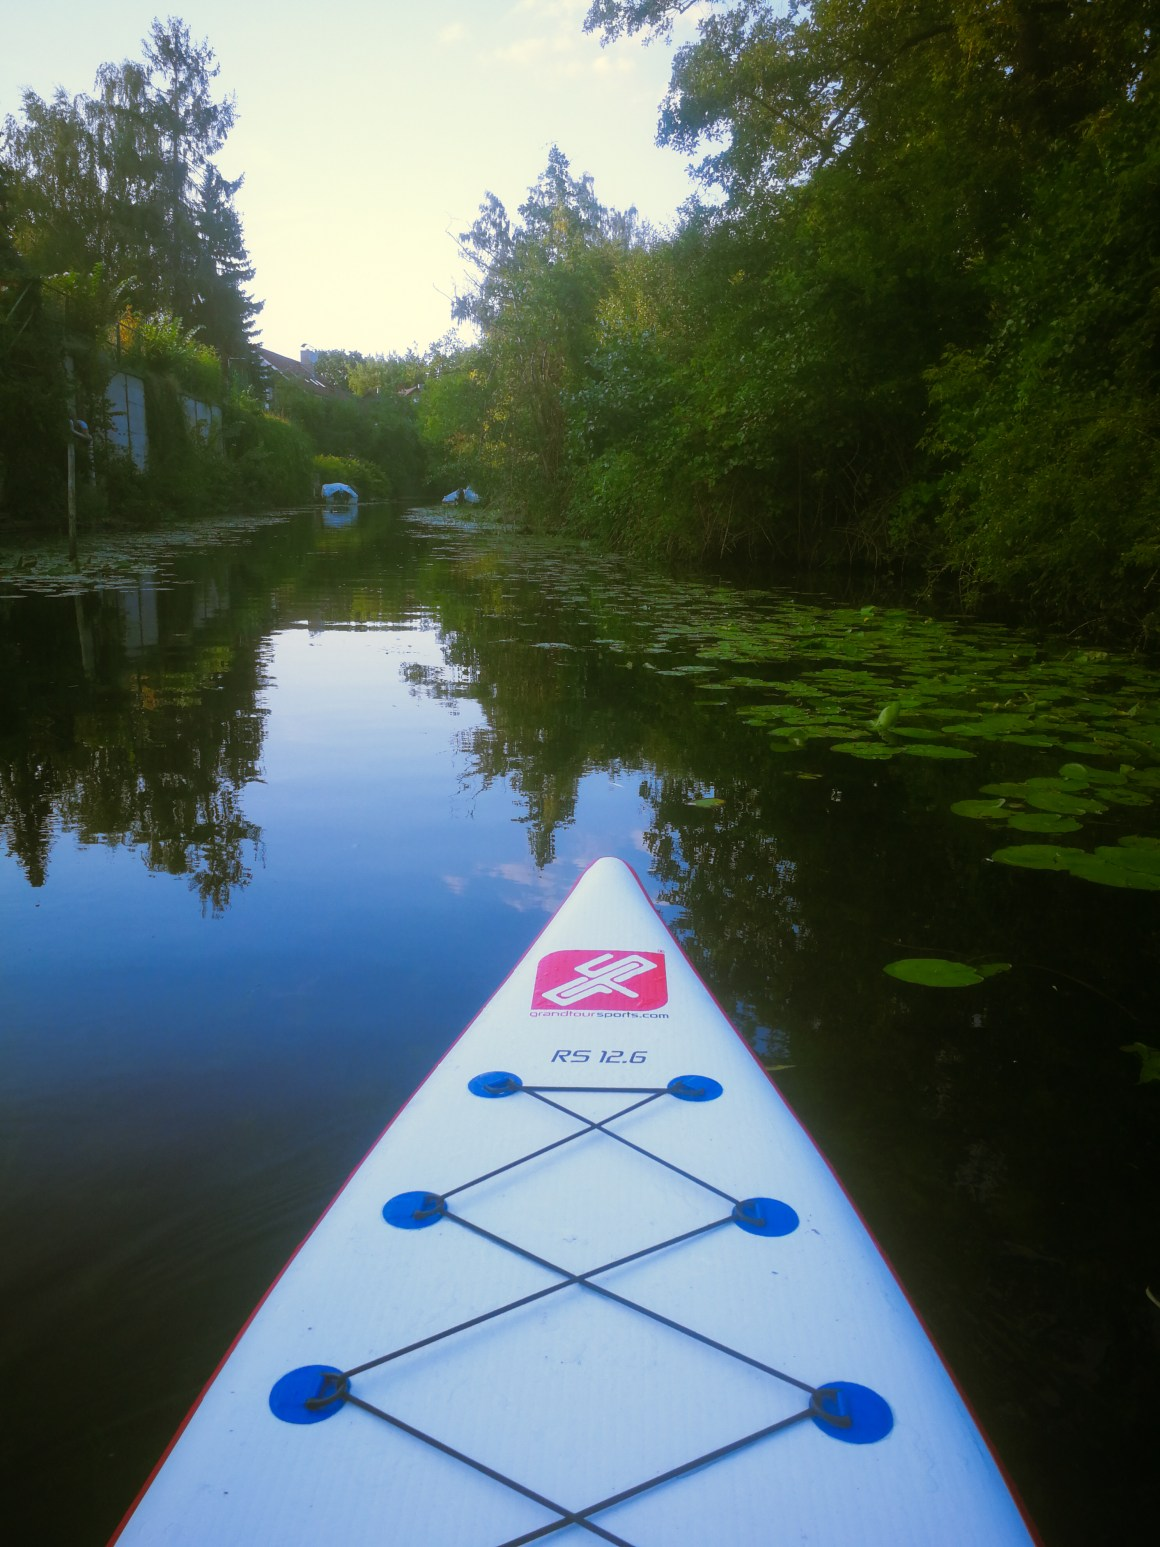 SUP in little Venice